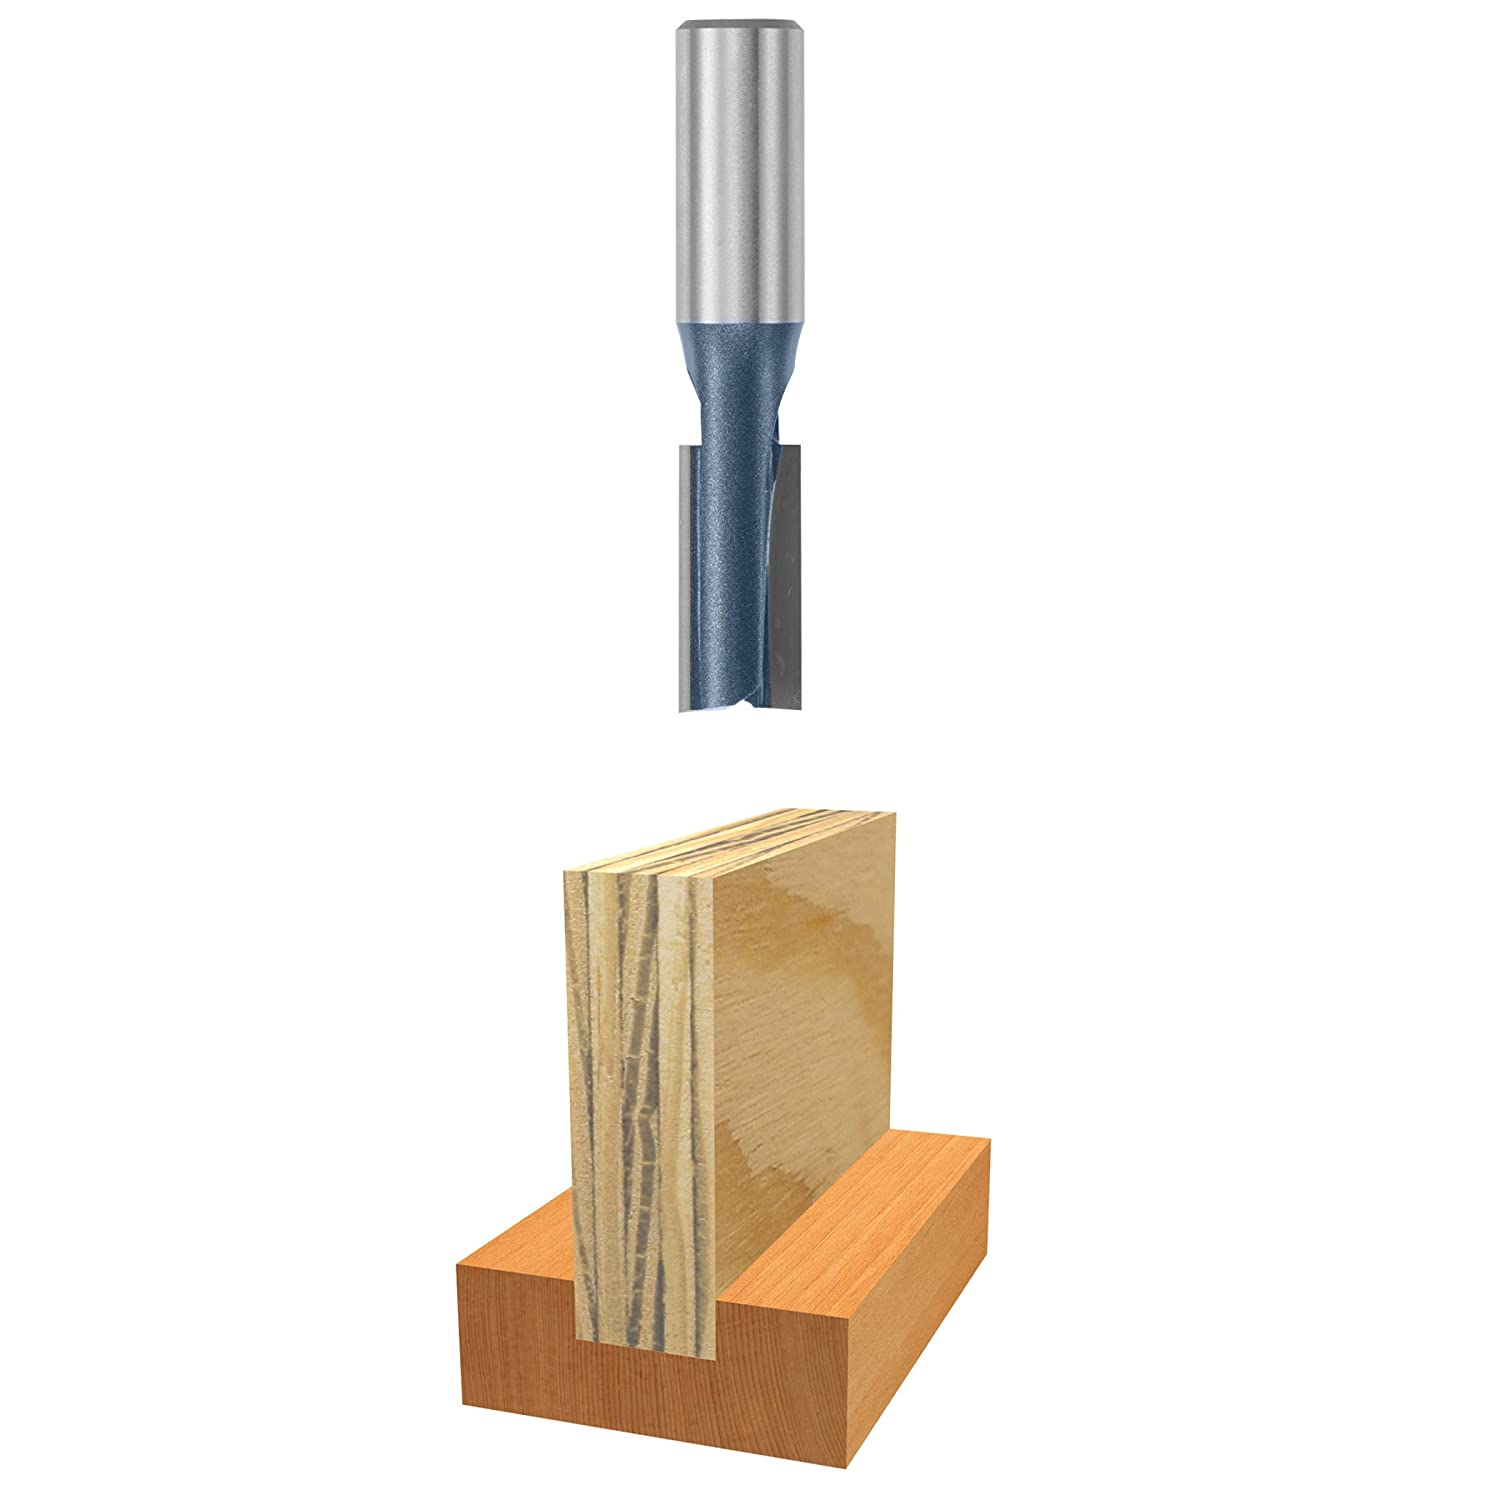 mortising bit. bosch 84603m 23/32 in. x 1-1/4 carbide tipped plywood mortising bit - amazon.com